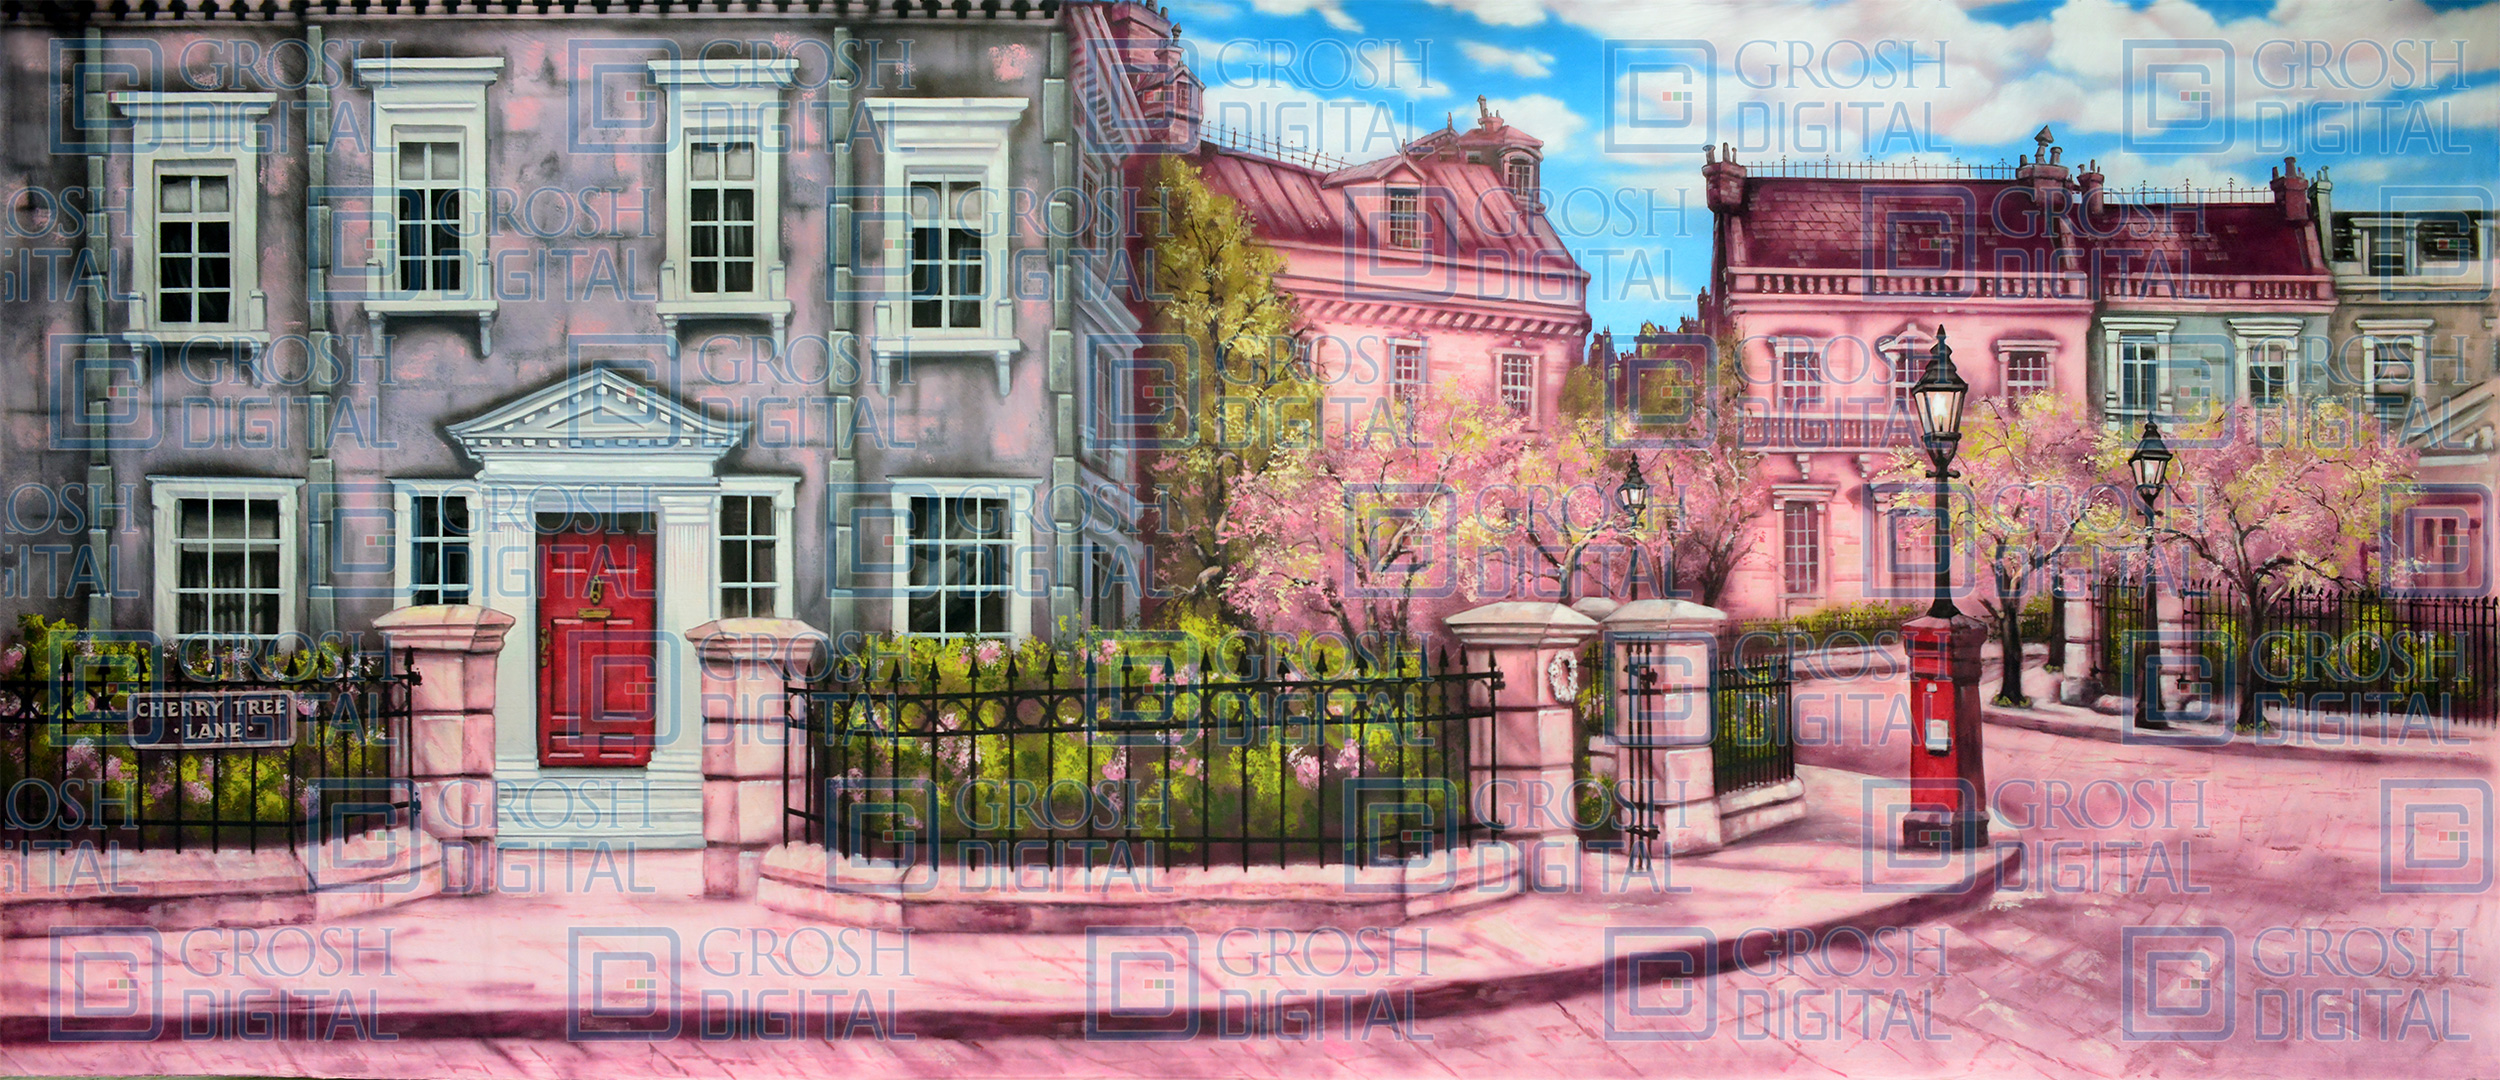 Cherry Tree Lane Projected Backdrop for Exteriors, Mary Poppins